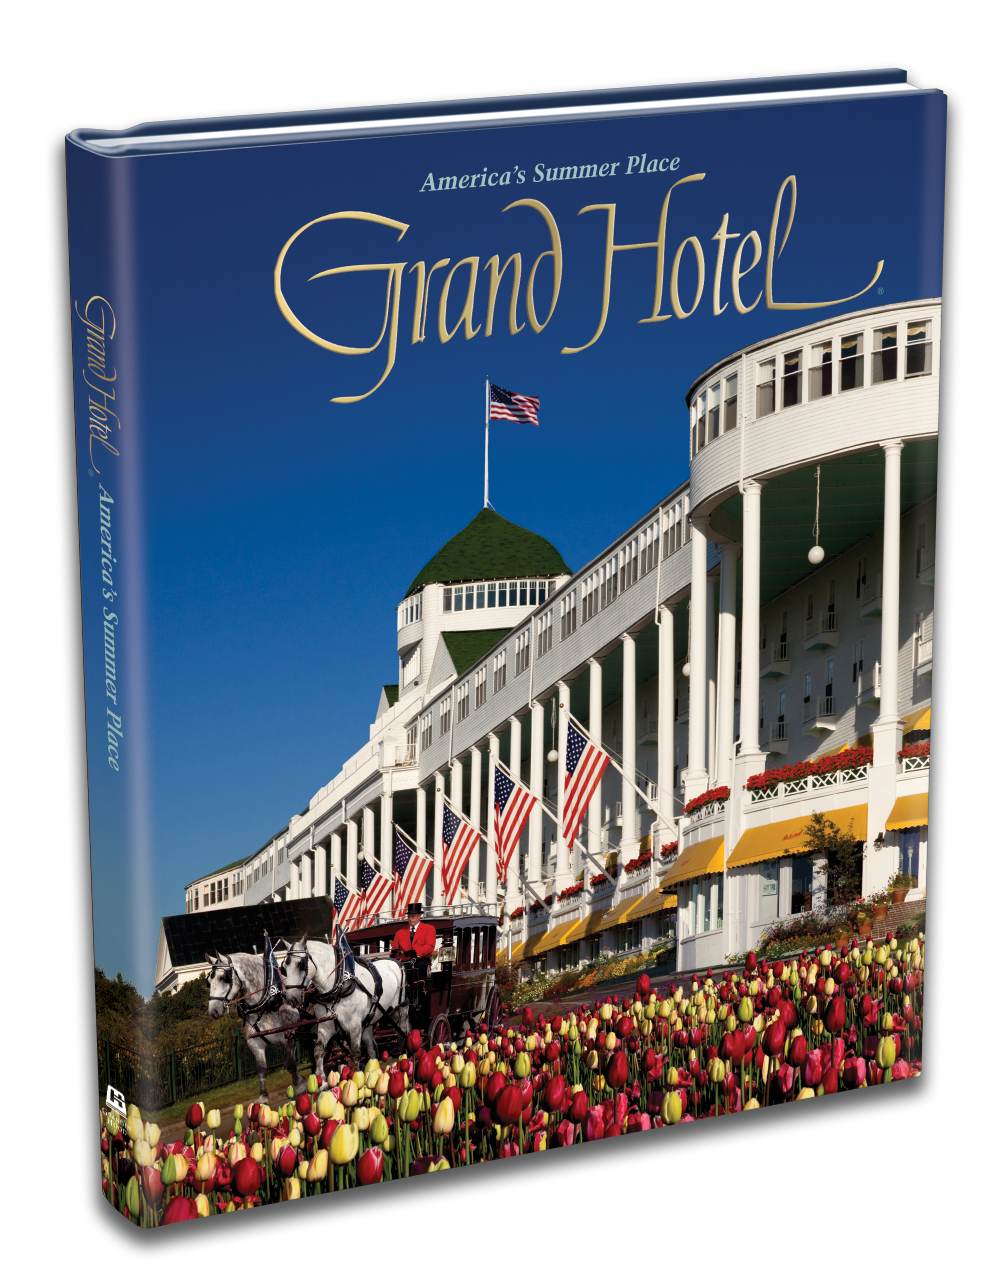 """Exceeding the Investment - Grand Hotel at Mackinac Island, Michigan celebrated its 125th Anniversary in 2012 by commissioning Grandin Hood to publish a commemorative coffee table book to mark the milestone event. It continues to be among the most popular mementos the Hotel sells today.From the initial order of 10,000 books, 1,000 were designated to be enhanced as """"Special Edition"""" copies, signed by the Grand Hotel's longtime and venerated owner. The signed books were offered as part of the 125th Anniversary package, which filled quickly.Additionally, during that first and the following six-month season, enough copies were sold to exceed their full investment. Over the course of six subsequent years, the book has enjoyed continued success as a VIP amenity gift and generated a handsome profit through brisk sales."""